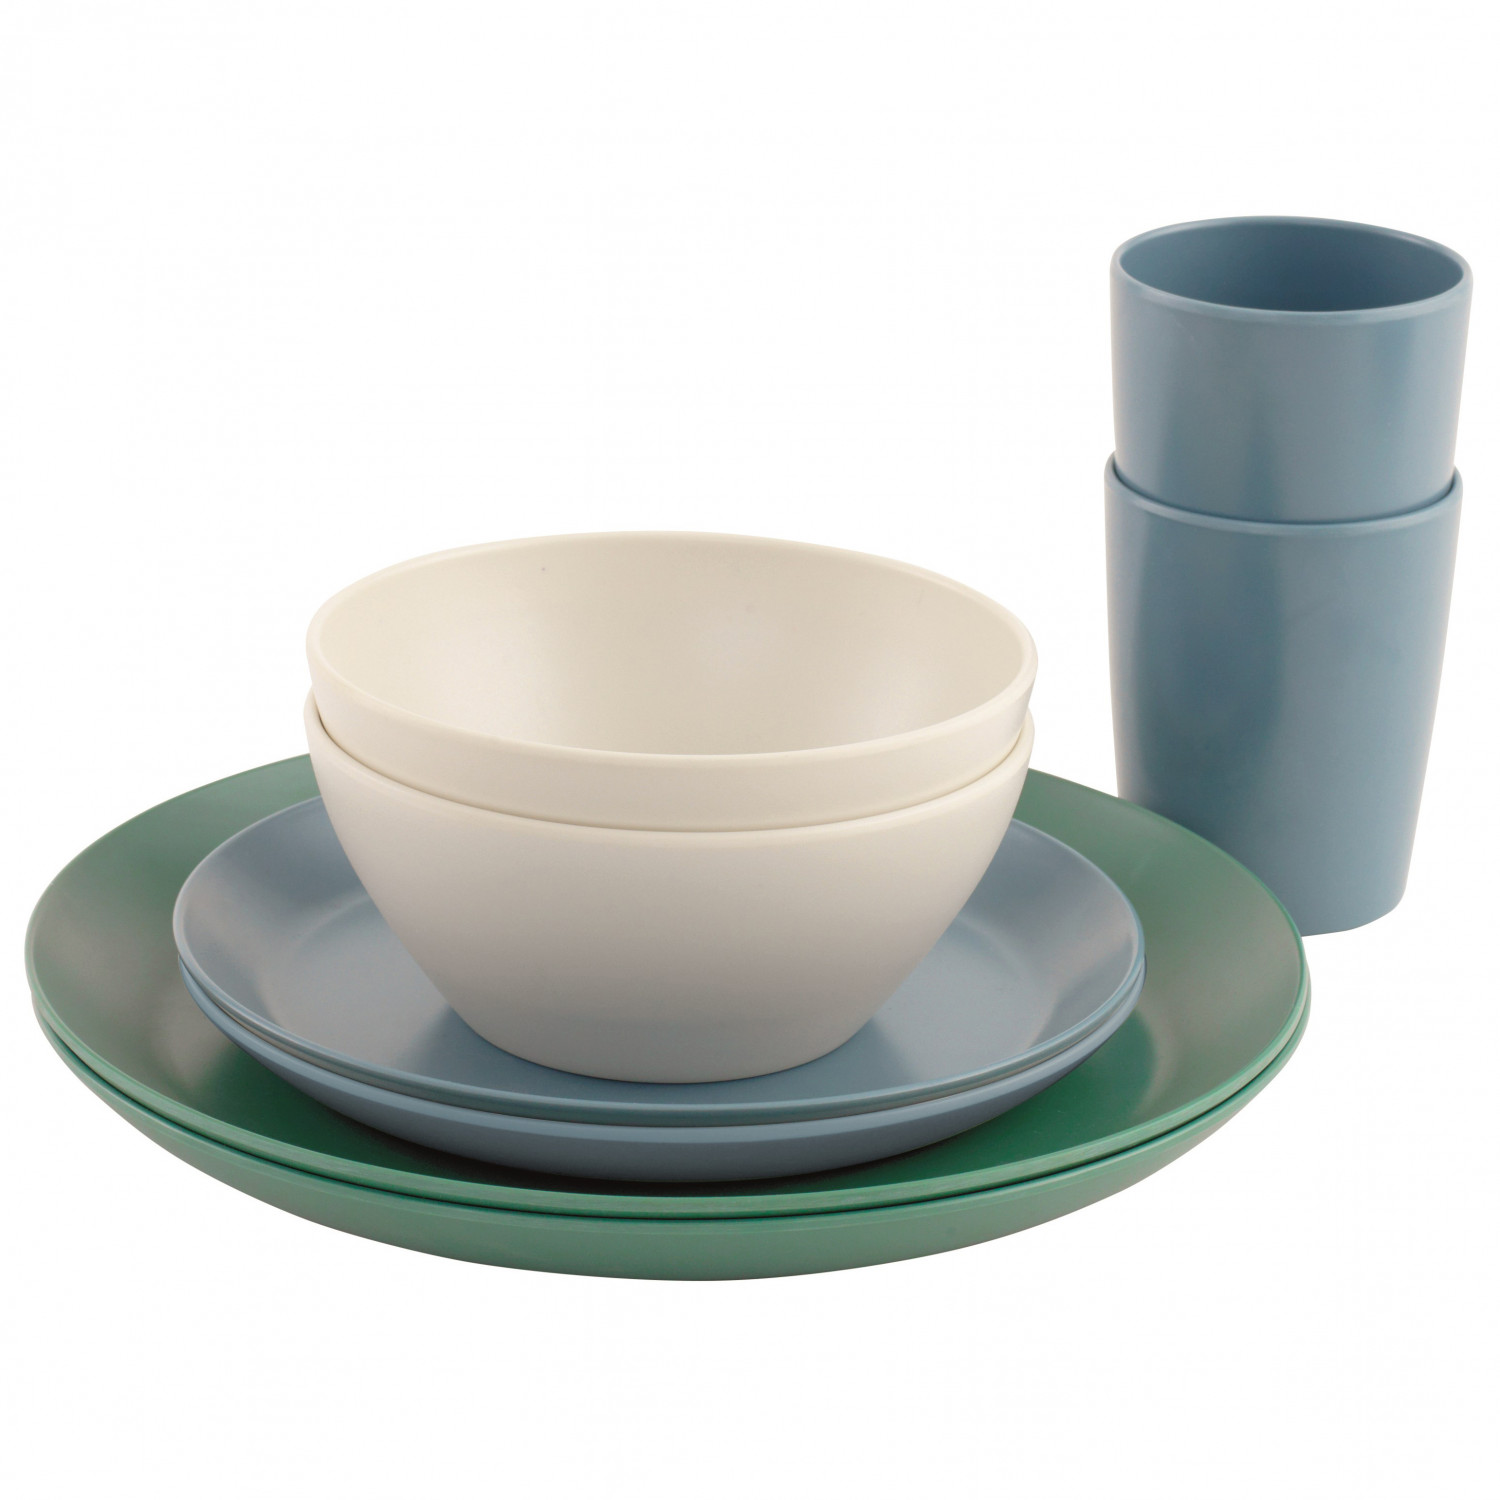 Geschirr Kaufen Outwell Daisy Dinner Set 2 Persons Geschirr Set Blue White Green